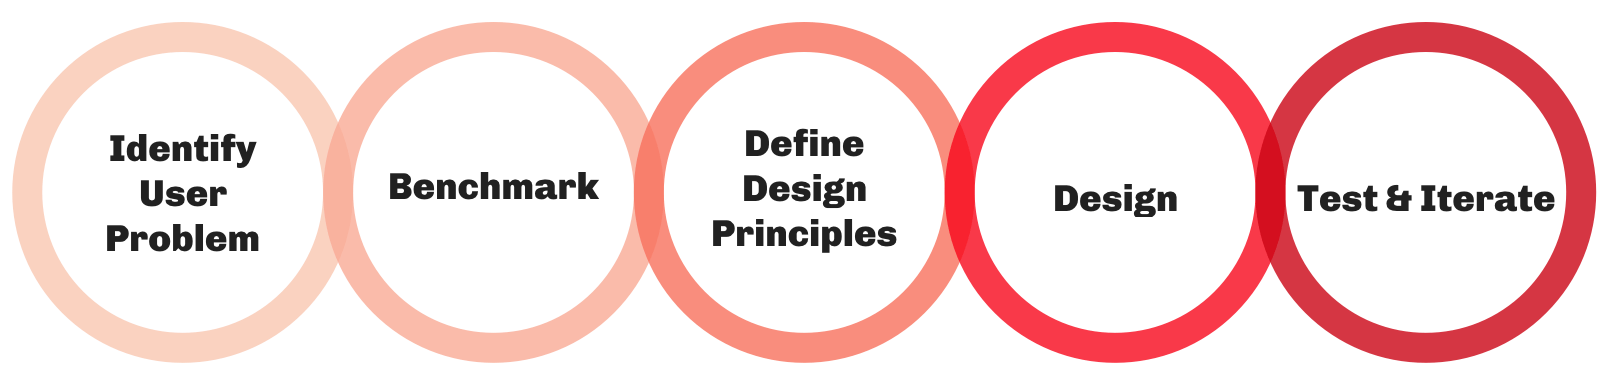 illustration of the design process